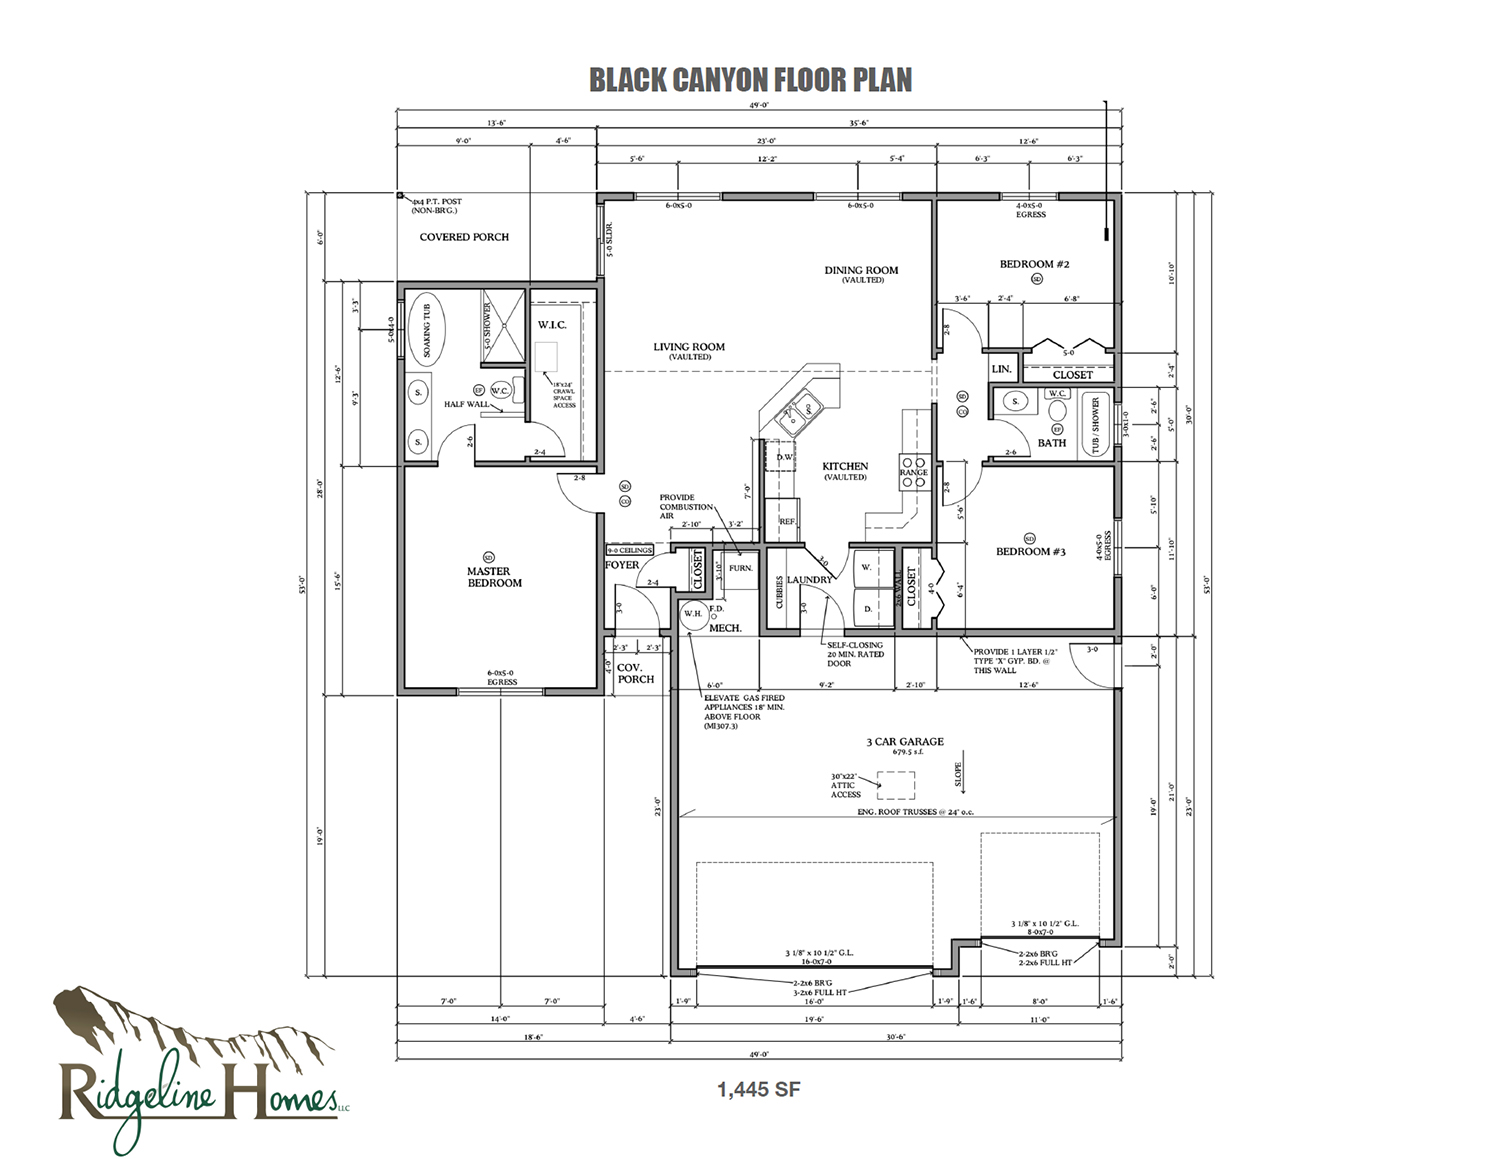 Black Canyon Home Model Floor Plan